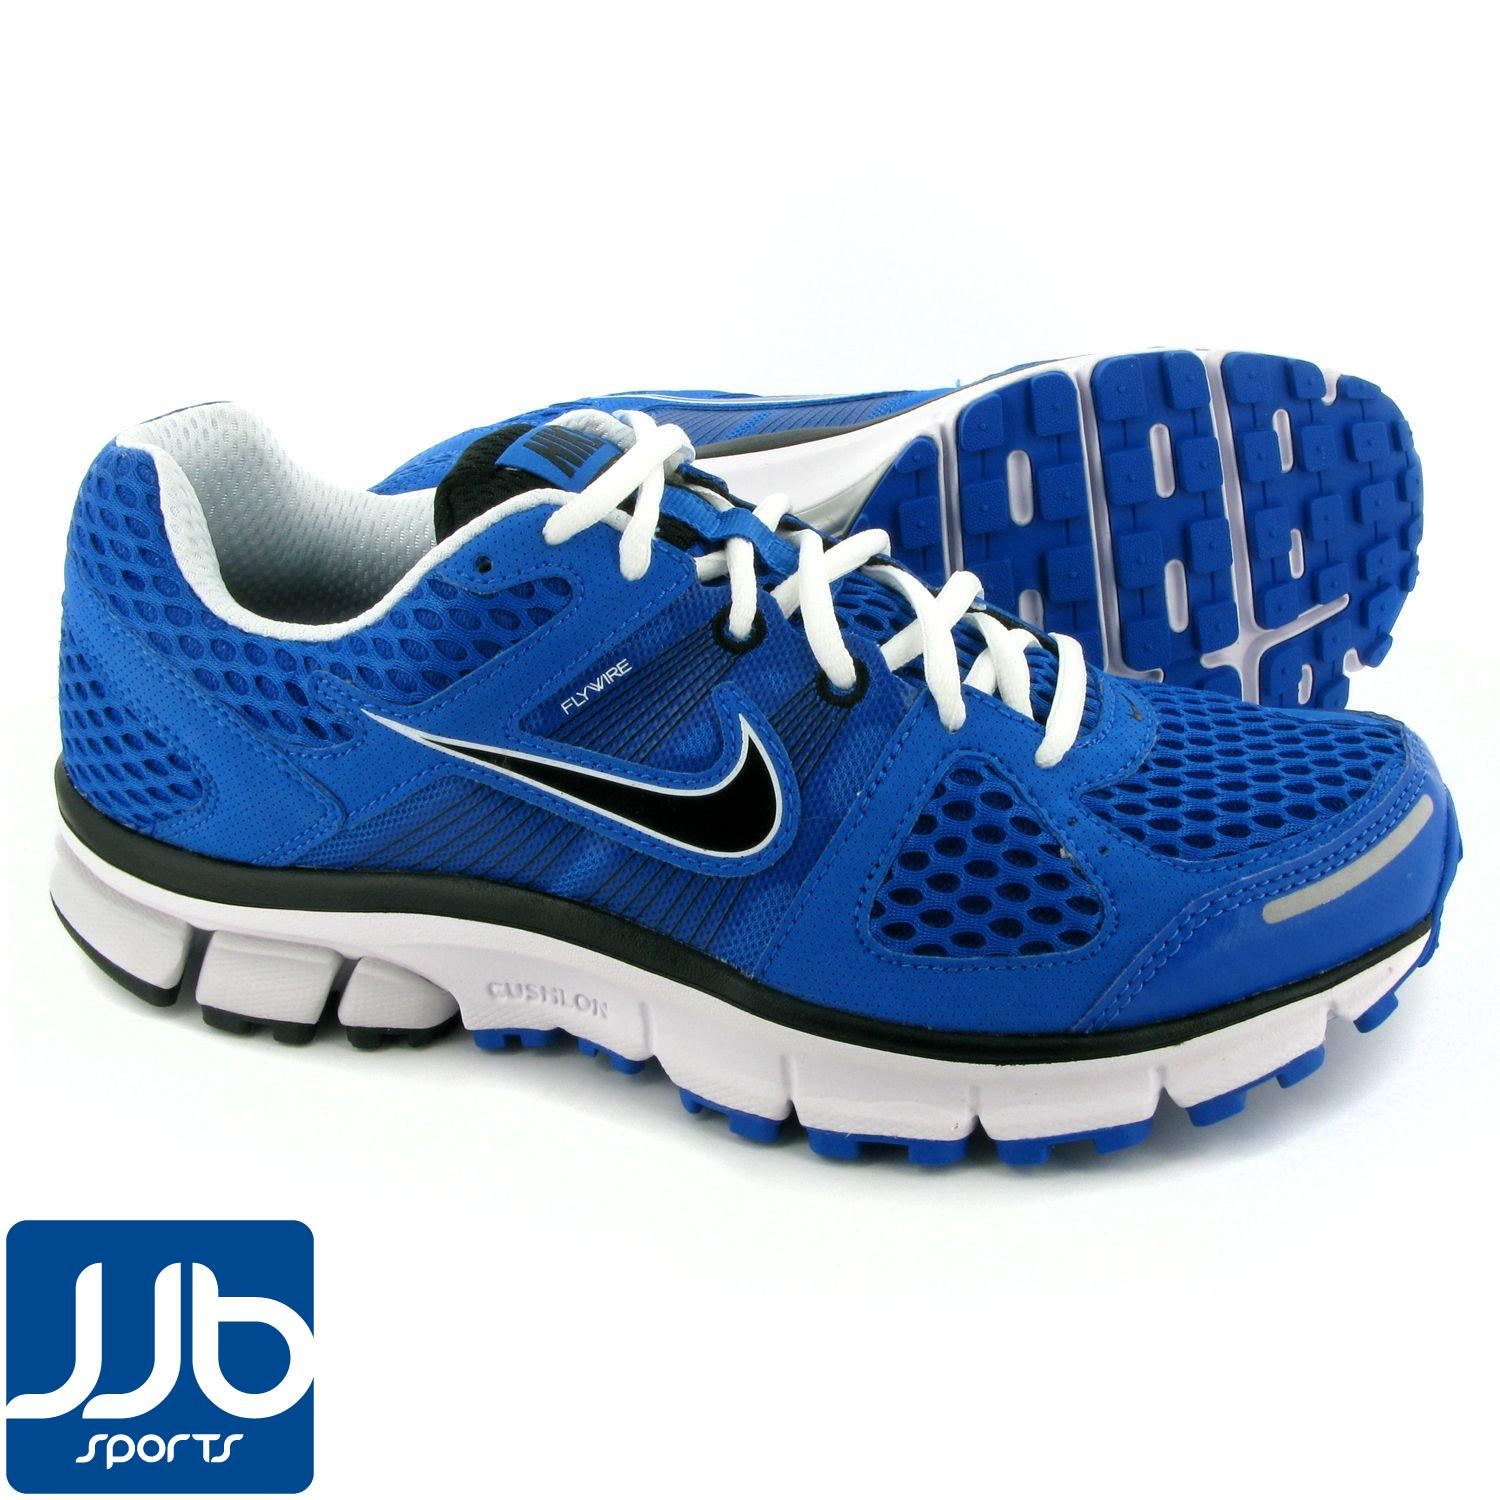 Jjb Sports Running Shoes